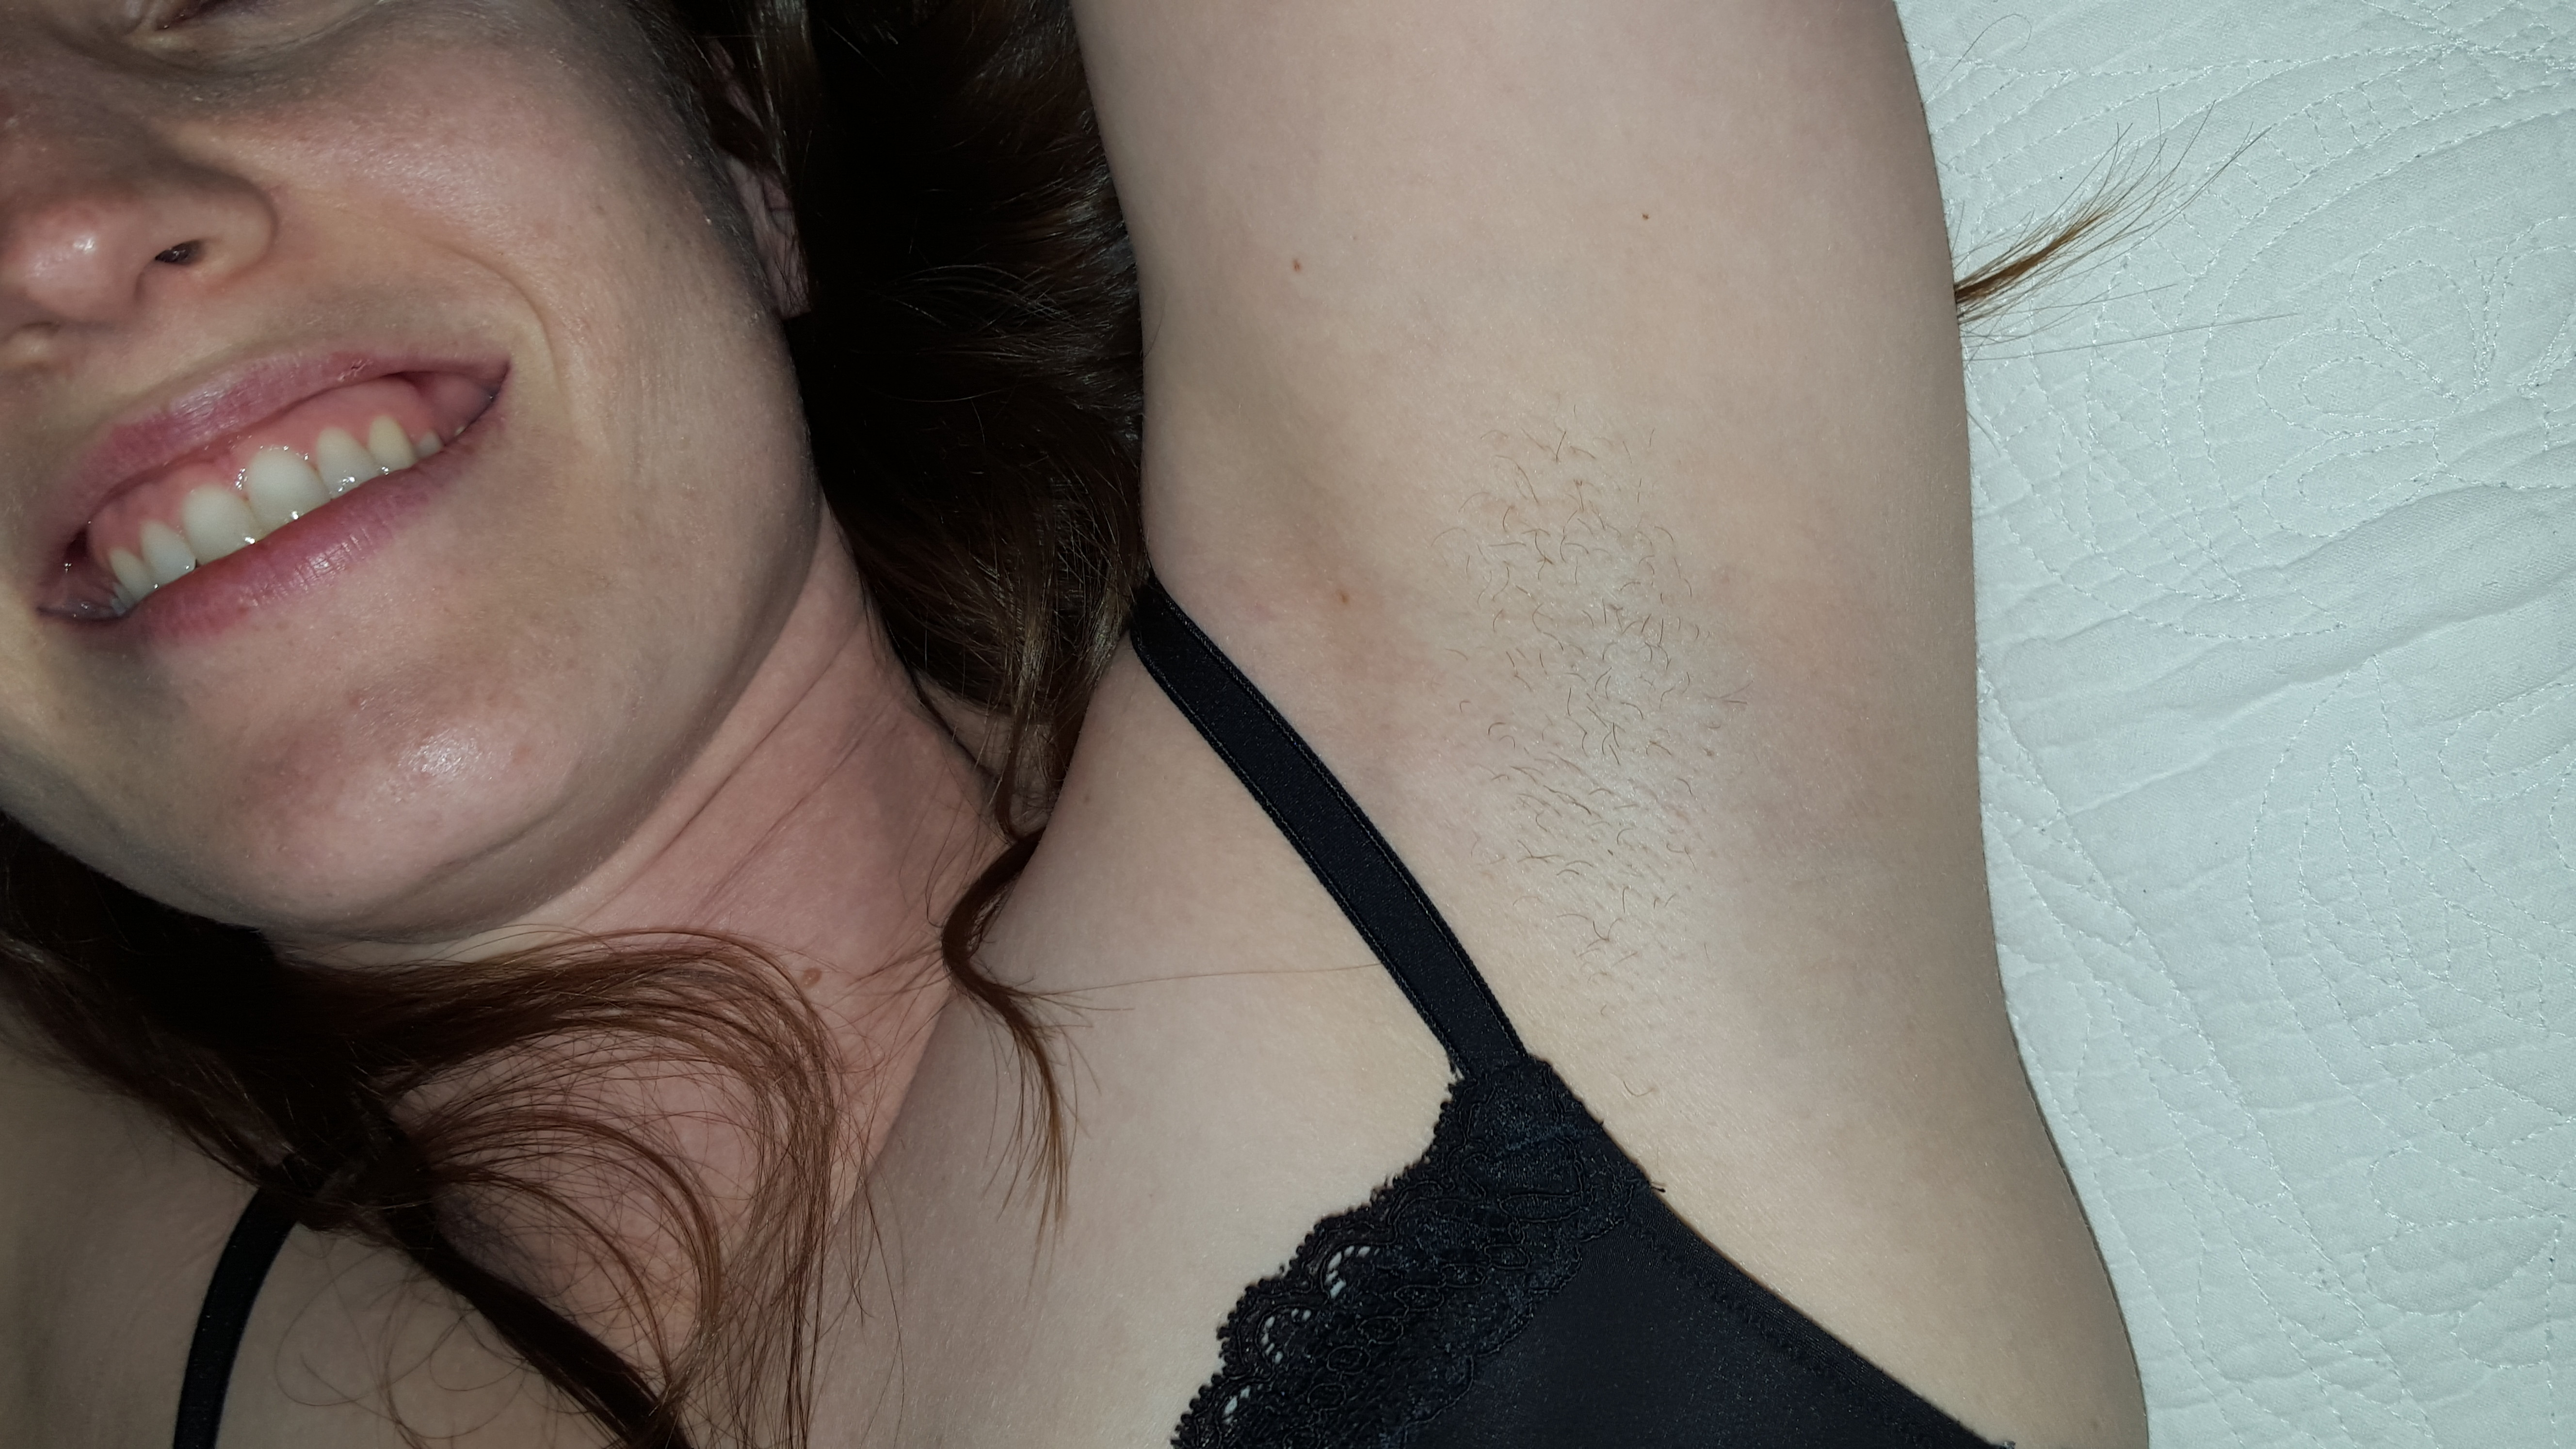 Rashes in armpits pictures Amanda Brooks Is Taking Her Leave - The New York Times